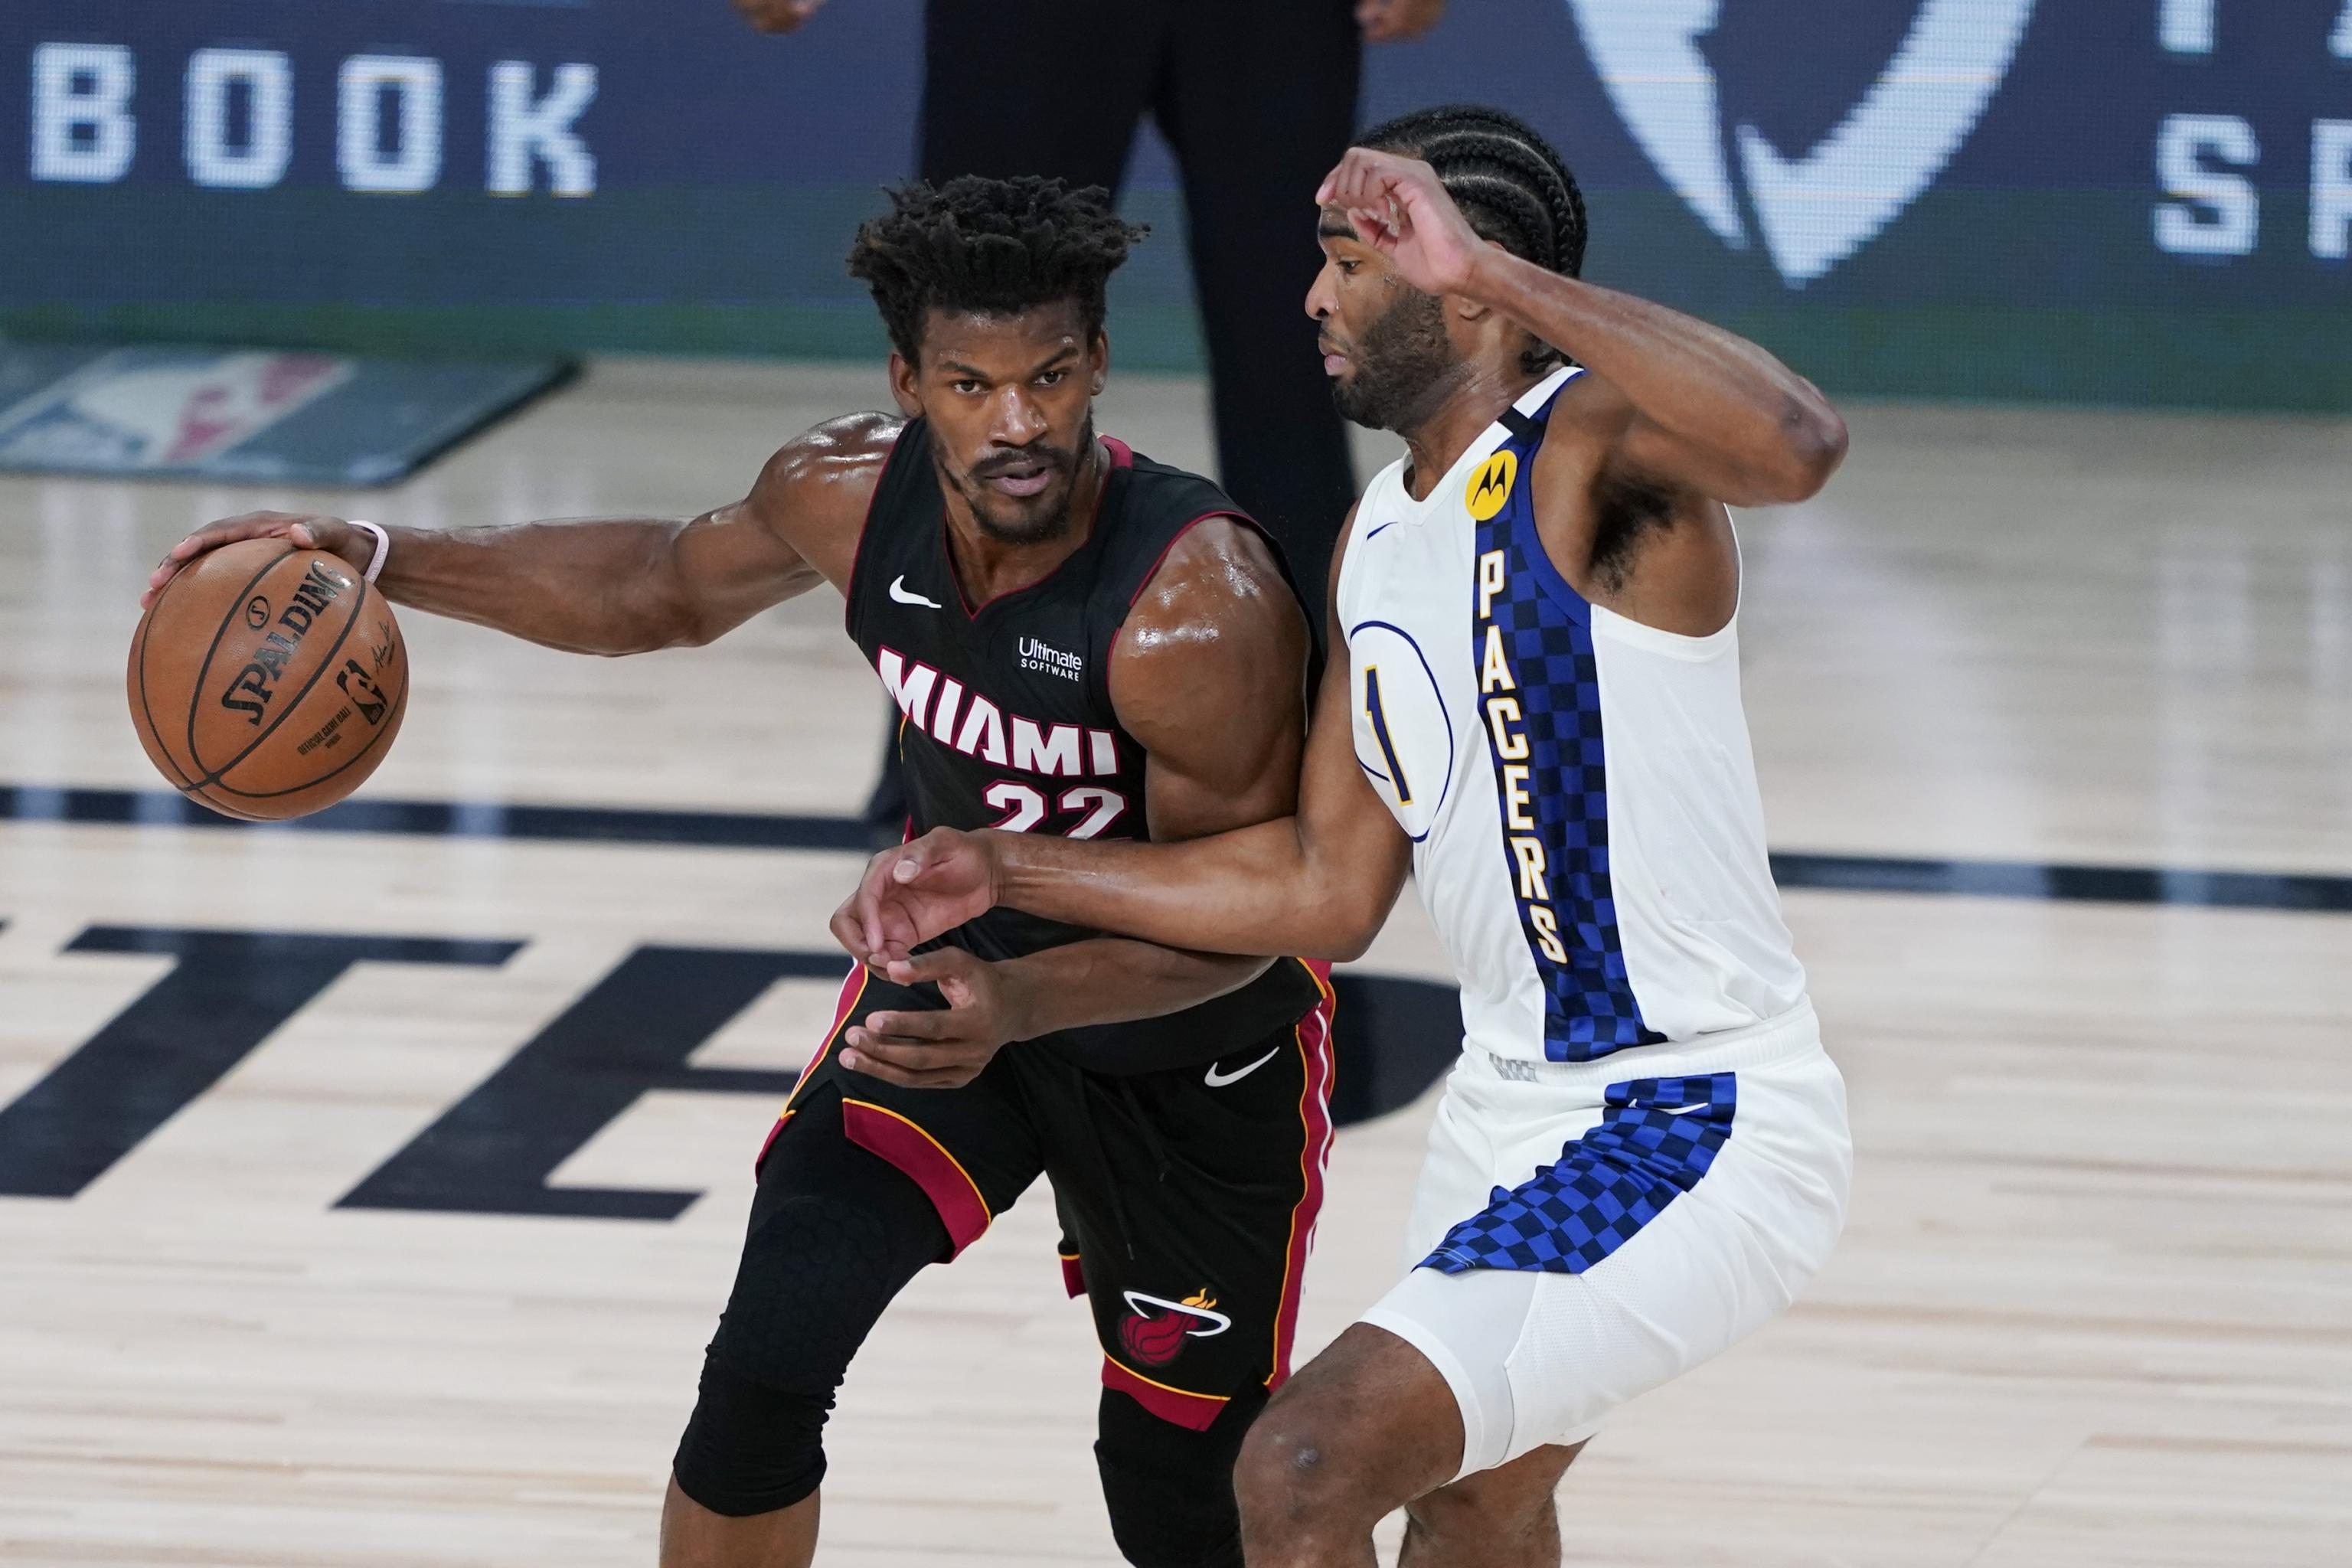 Jimmy Butler Stars As Heat Win Game 3 Push Pacers To Brink Of Elimination Bleacher Report Latest News Videos And Highlights